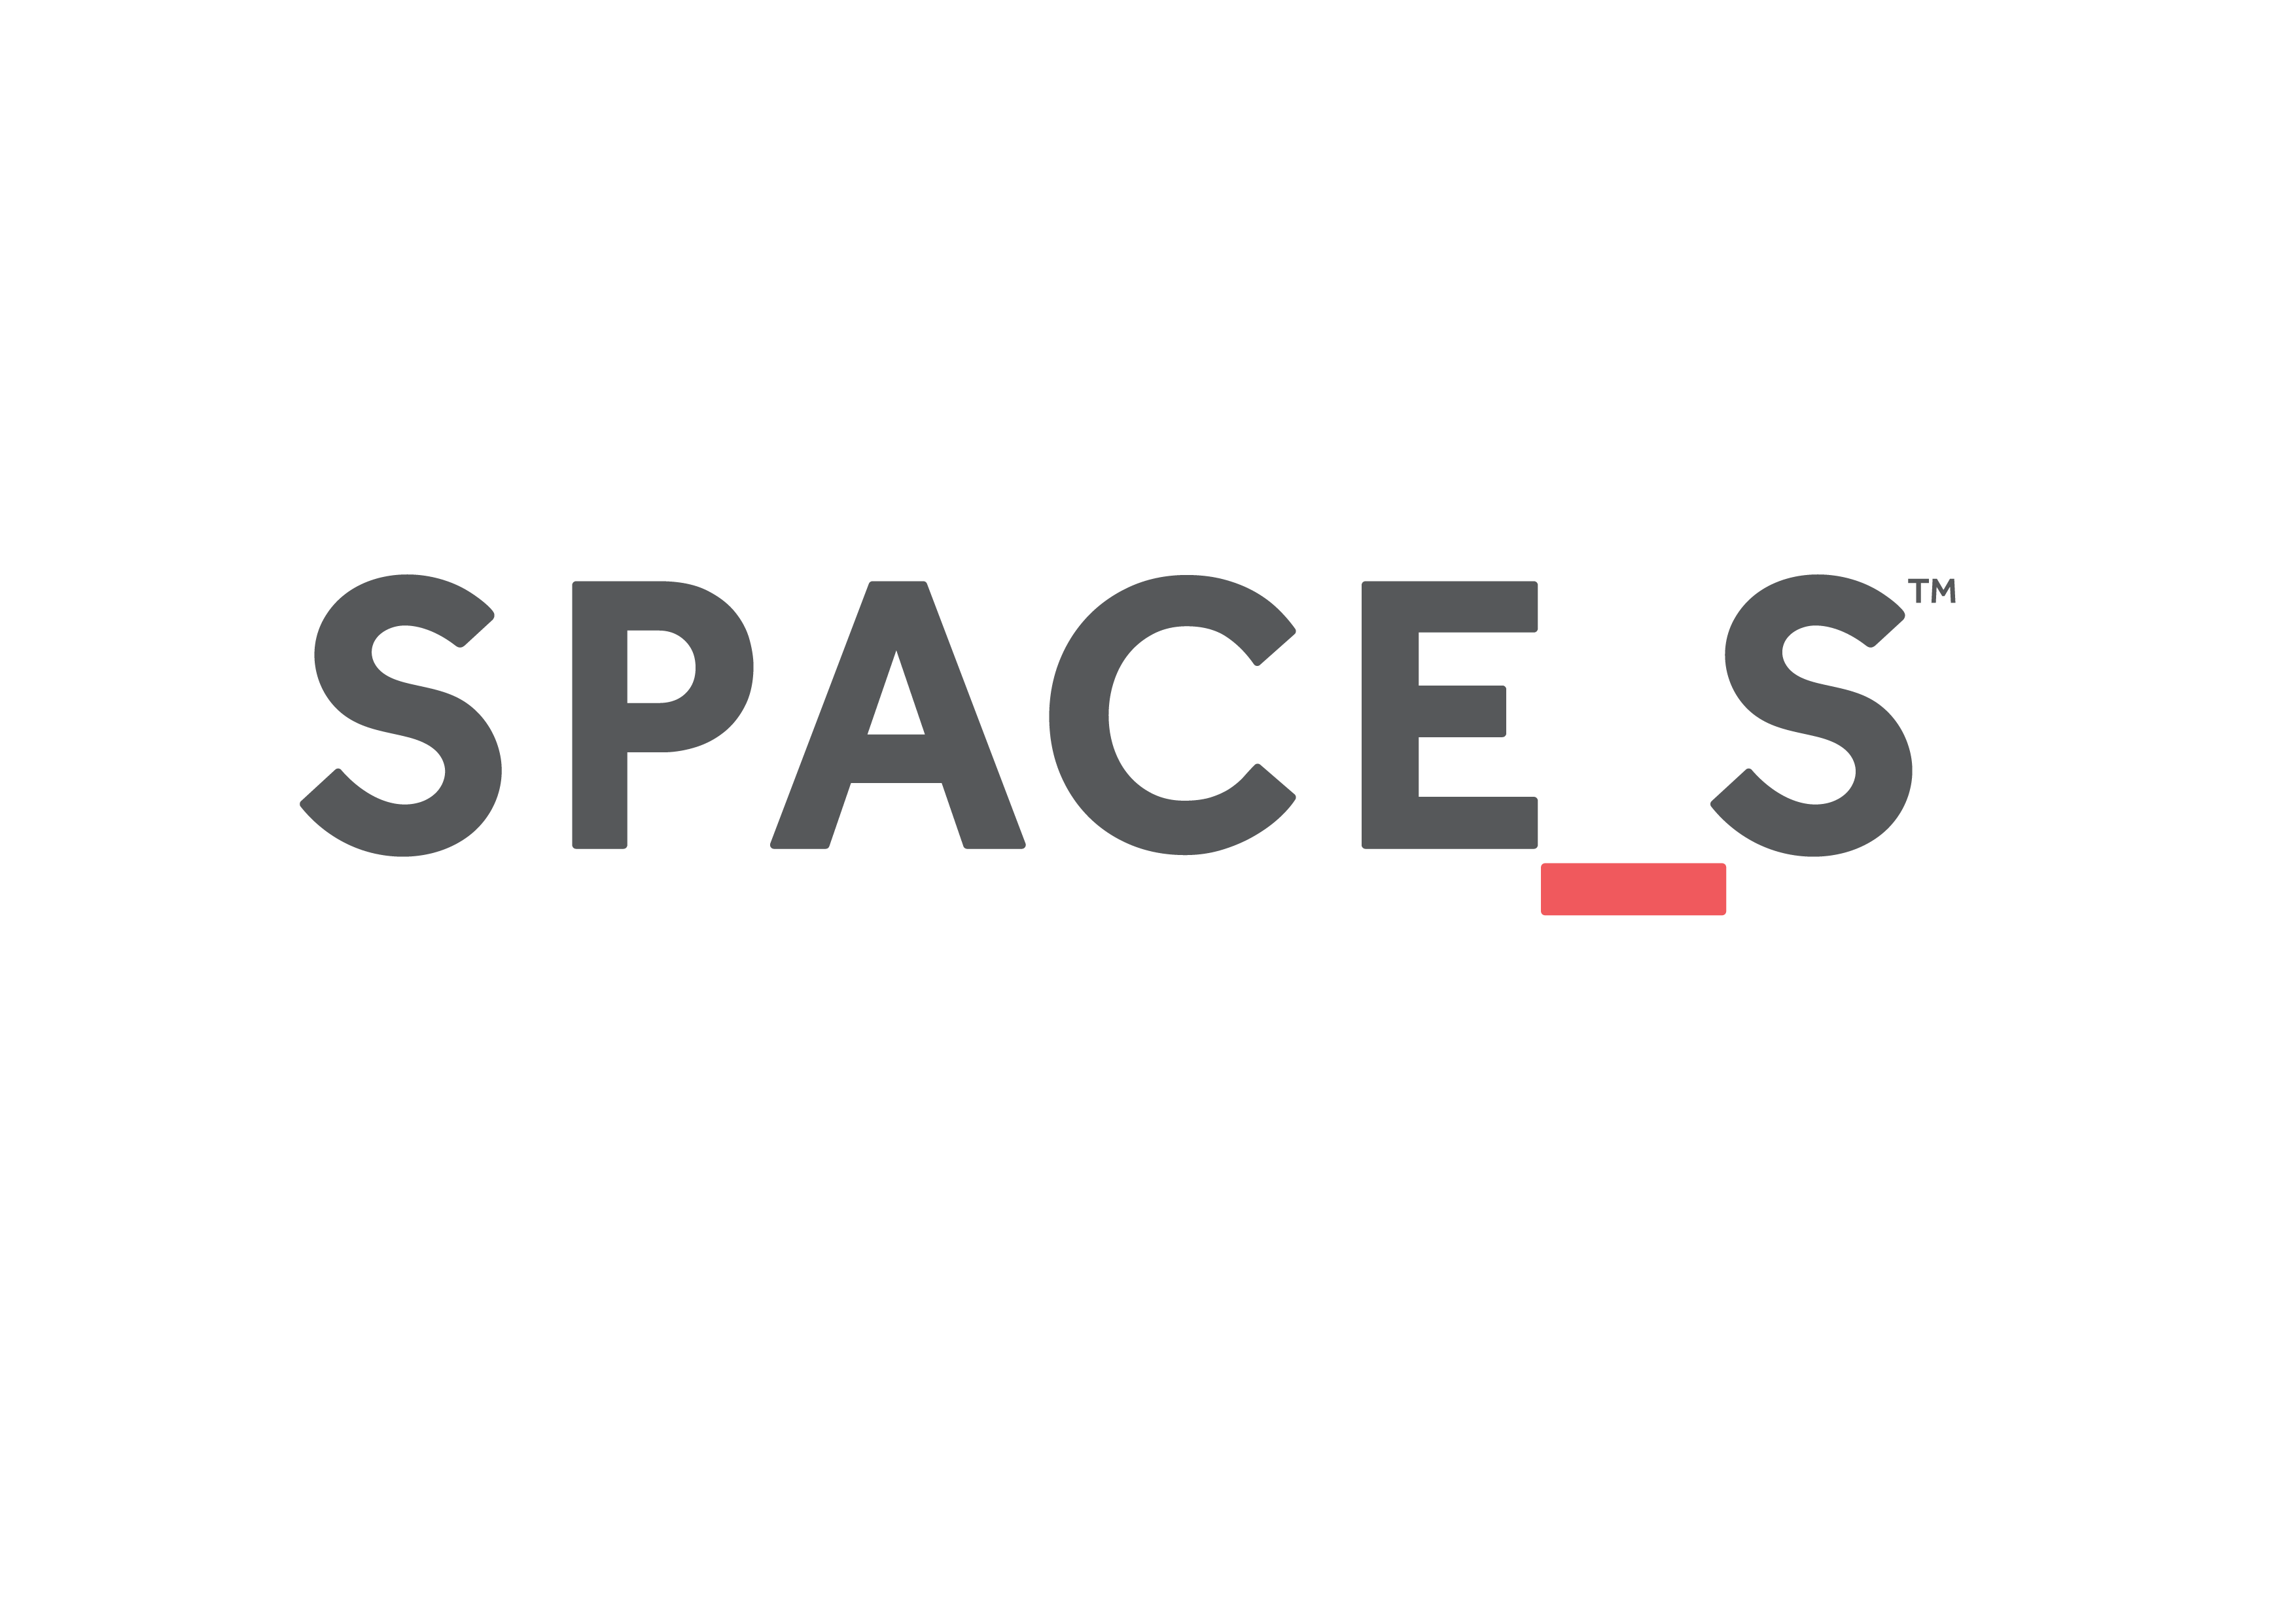 SPACE_S